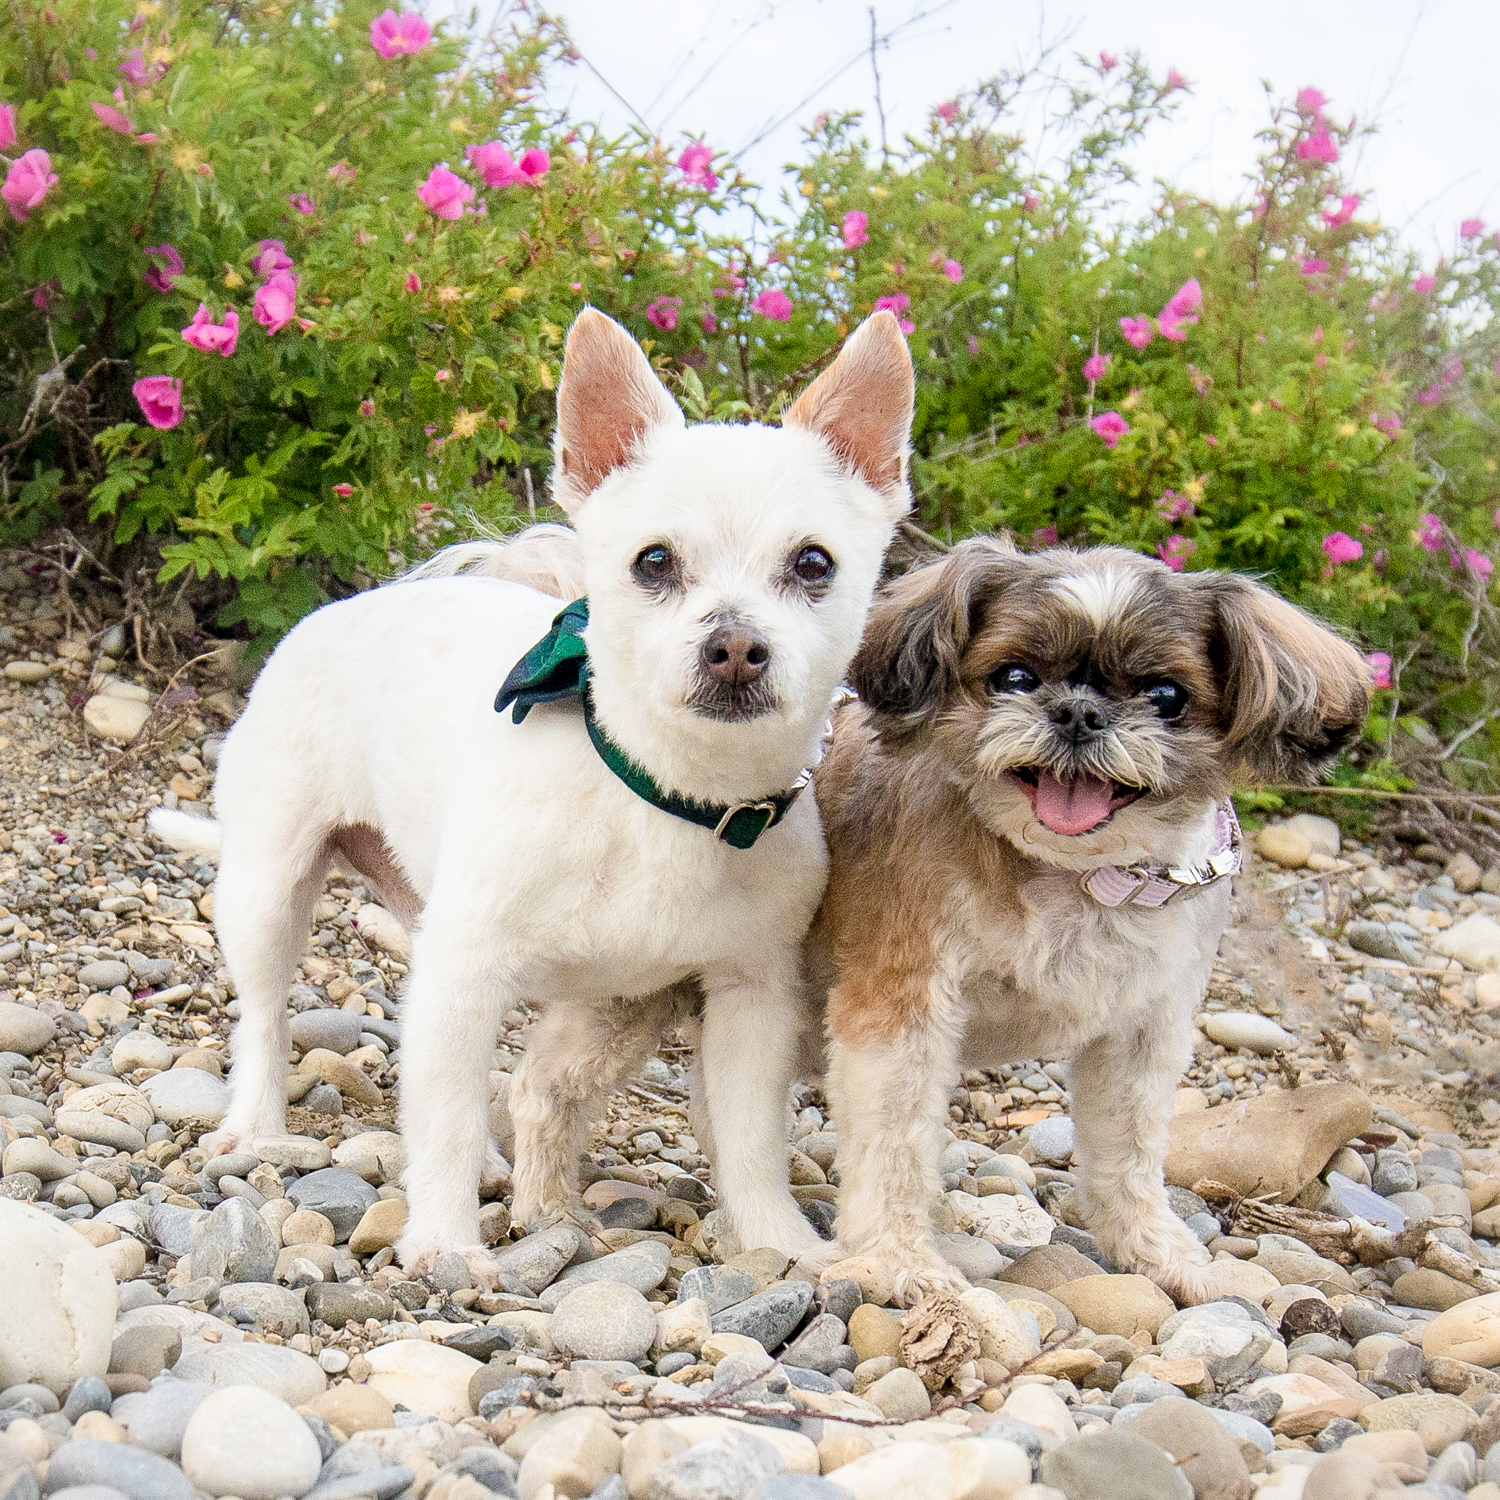 Two small breed dogs one smiling one with ears up